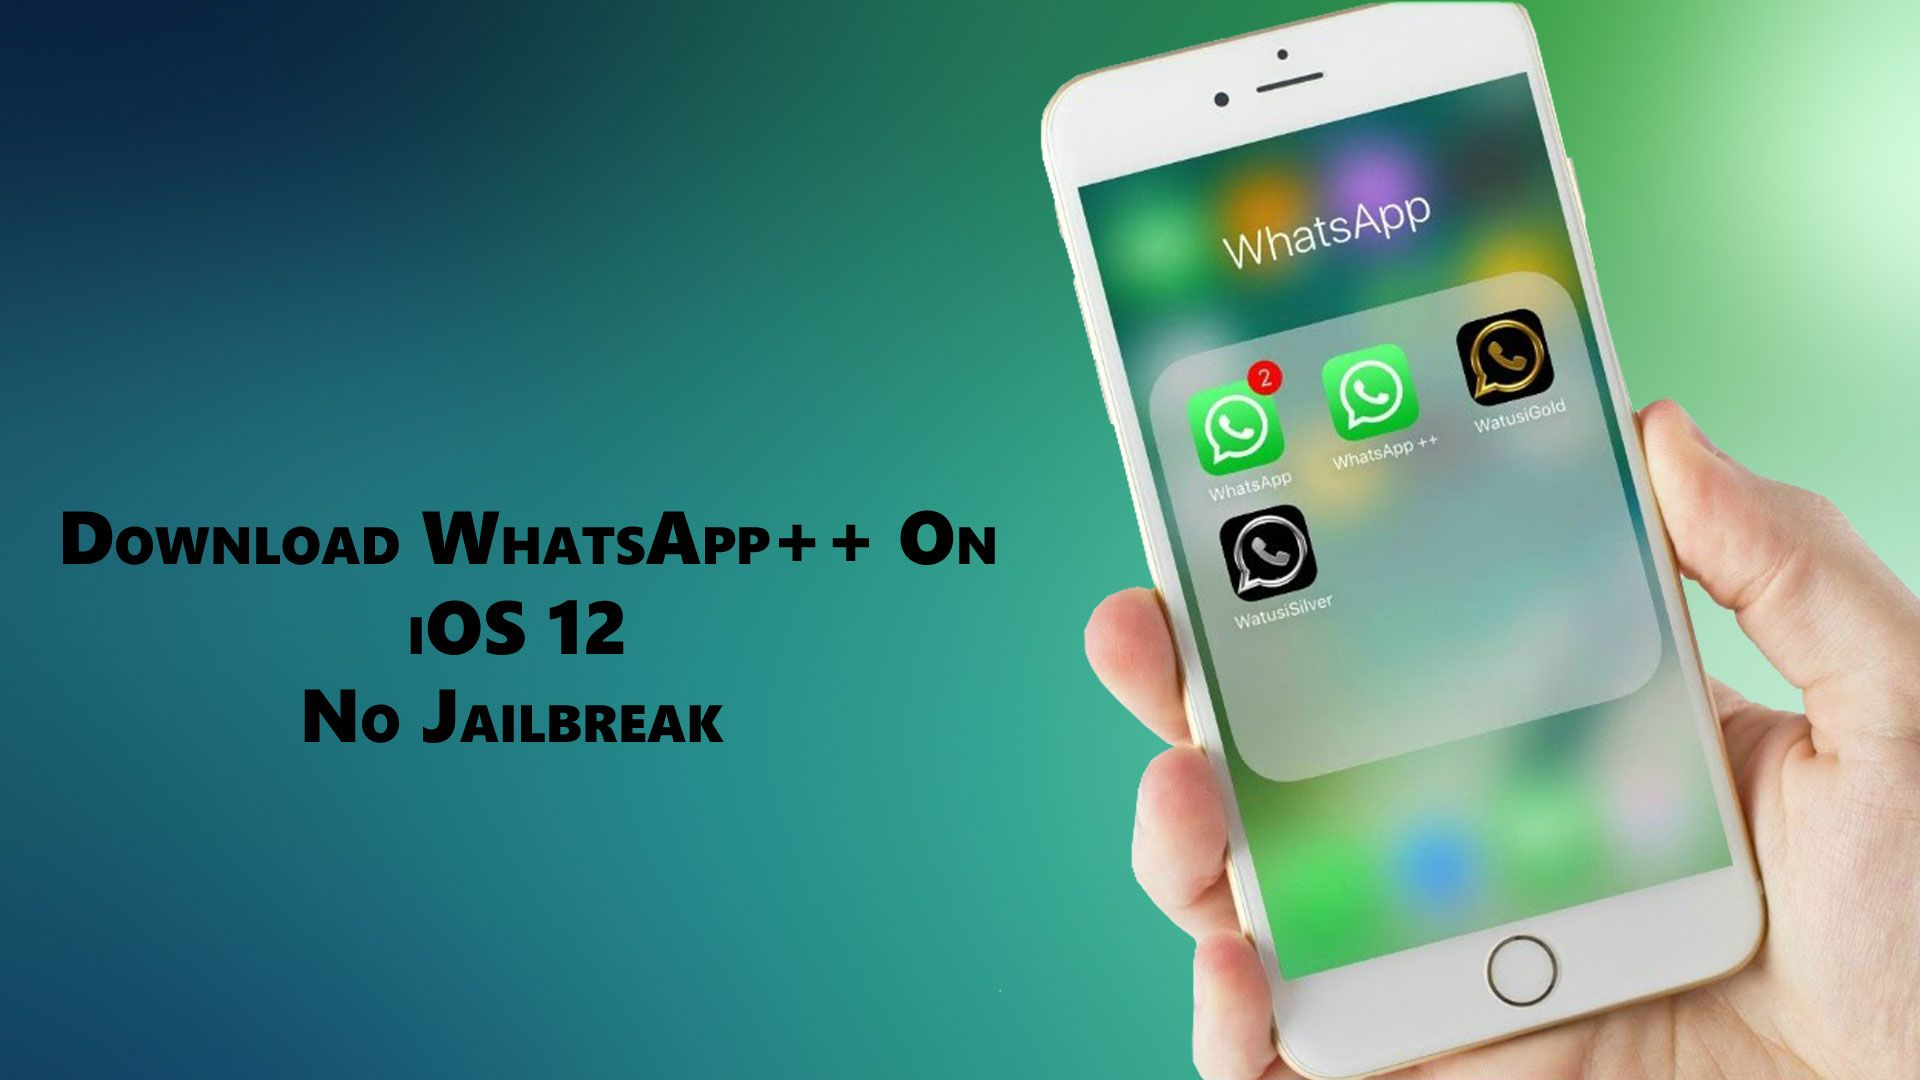 How to download WhatsApp++ on iPhone & iPad without